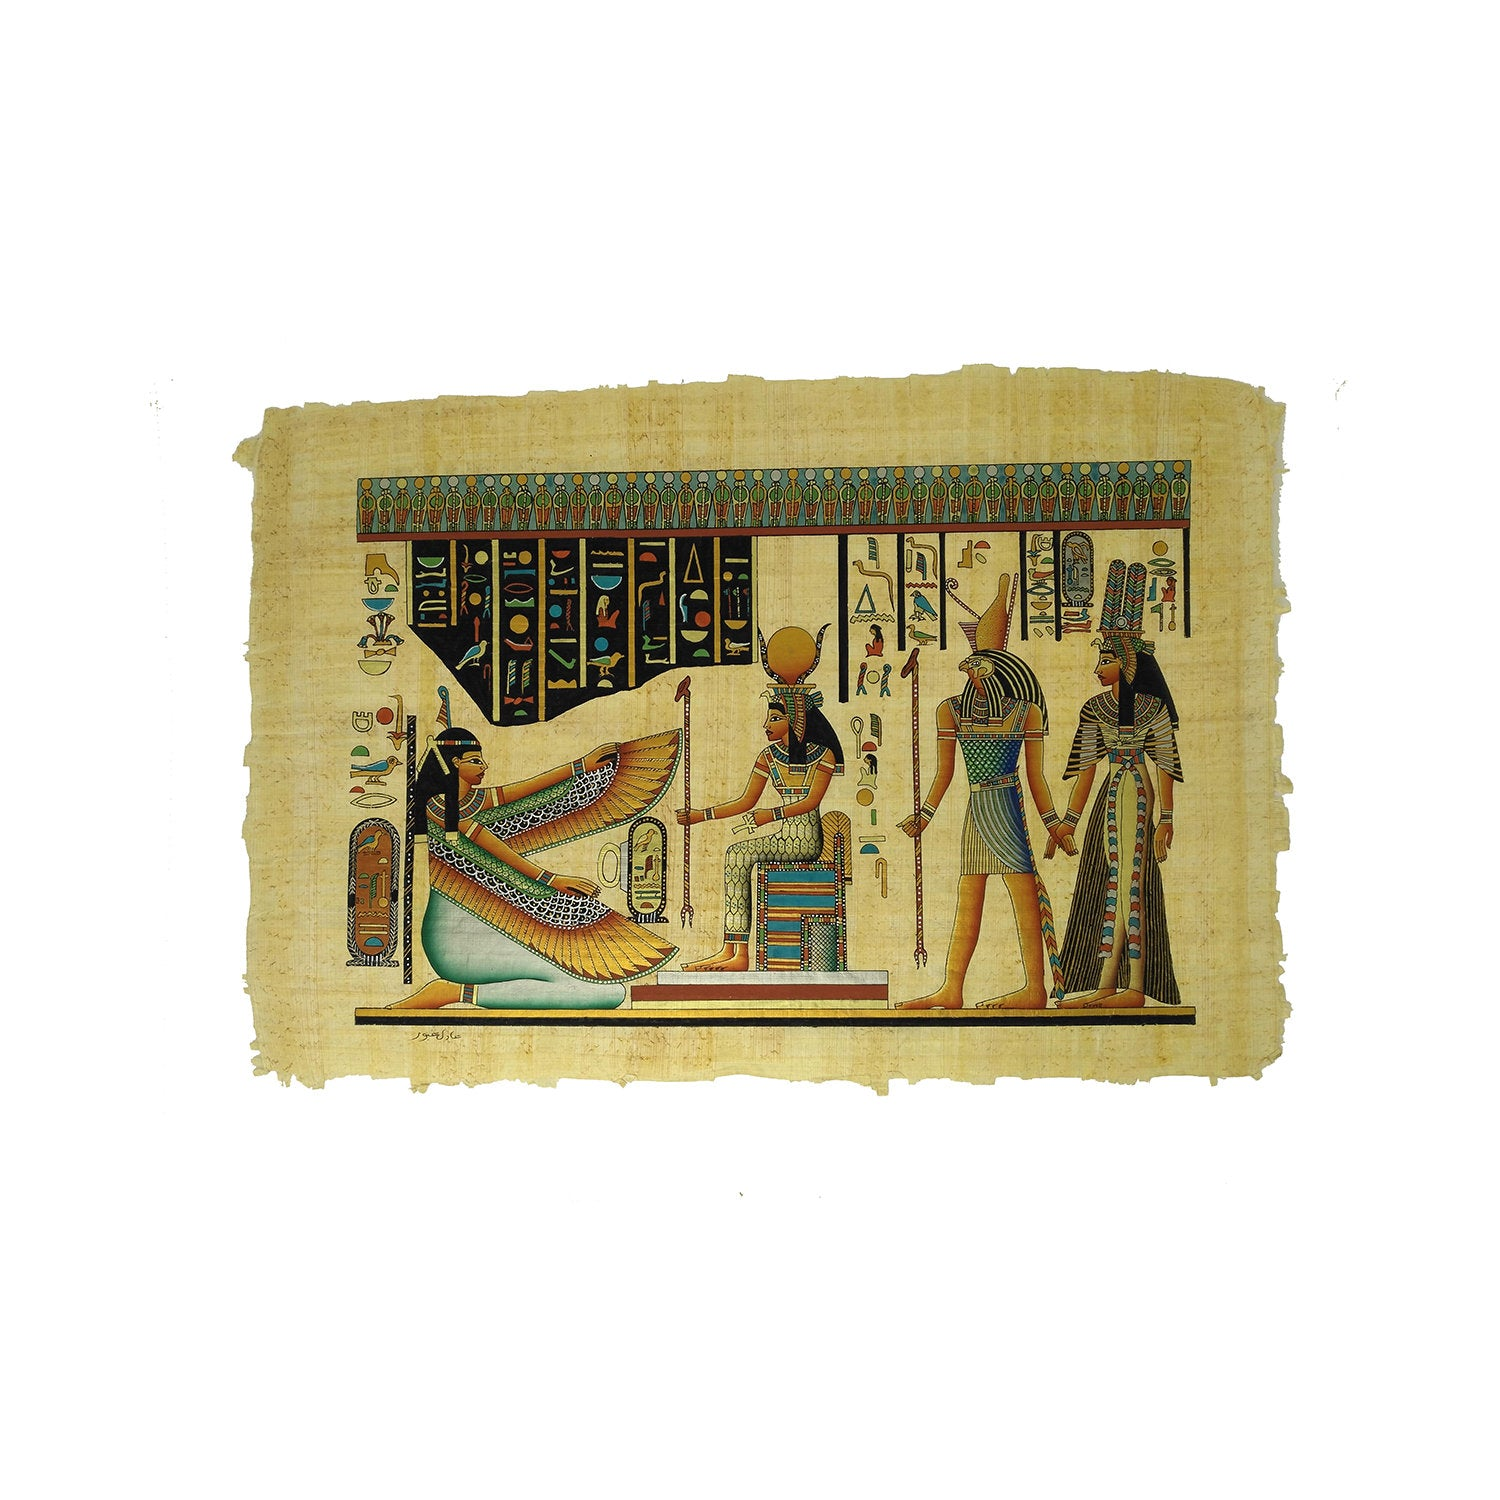 Horus Leading Nefertari into the Afterlife & Goddesses Isis and Ma'at Papyrus - 40x60cm